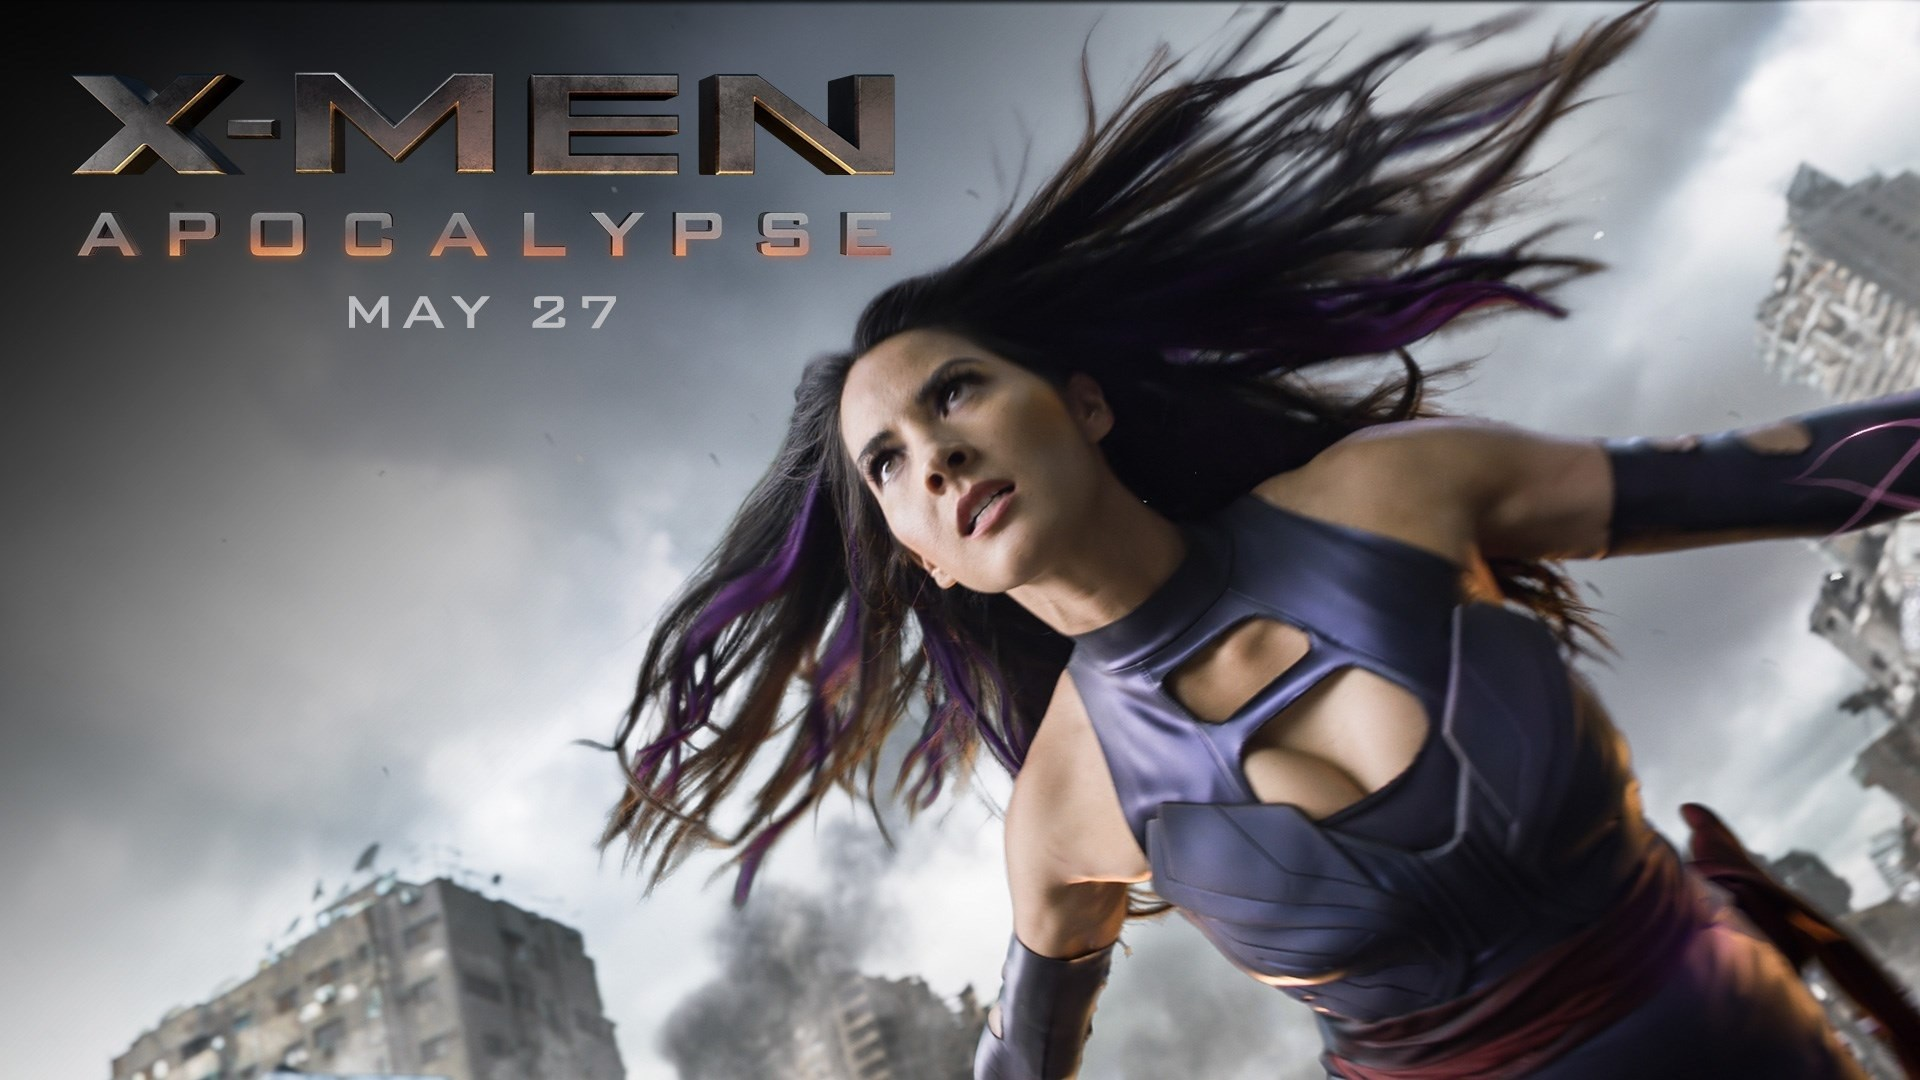 1920x1080  x men apocalypse cool wallpaper for desktop